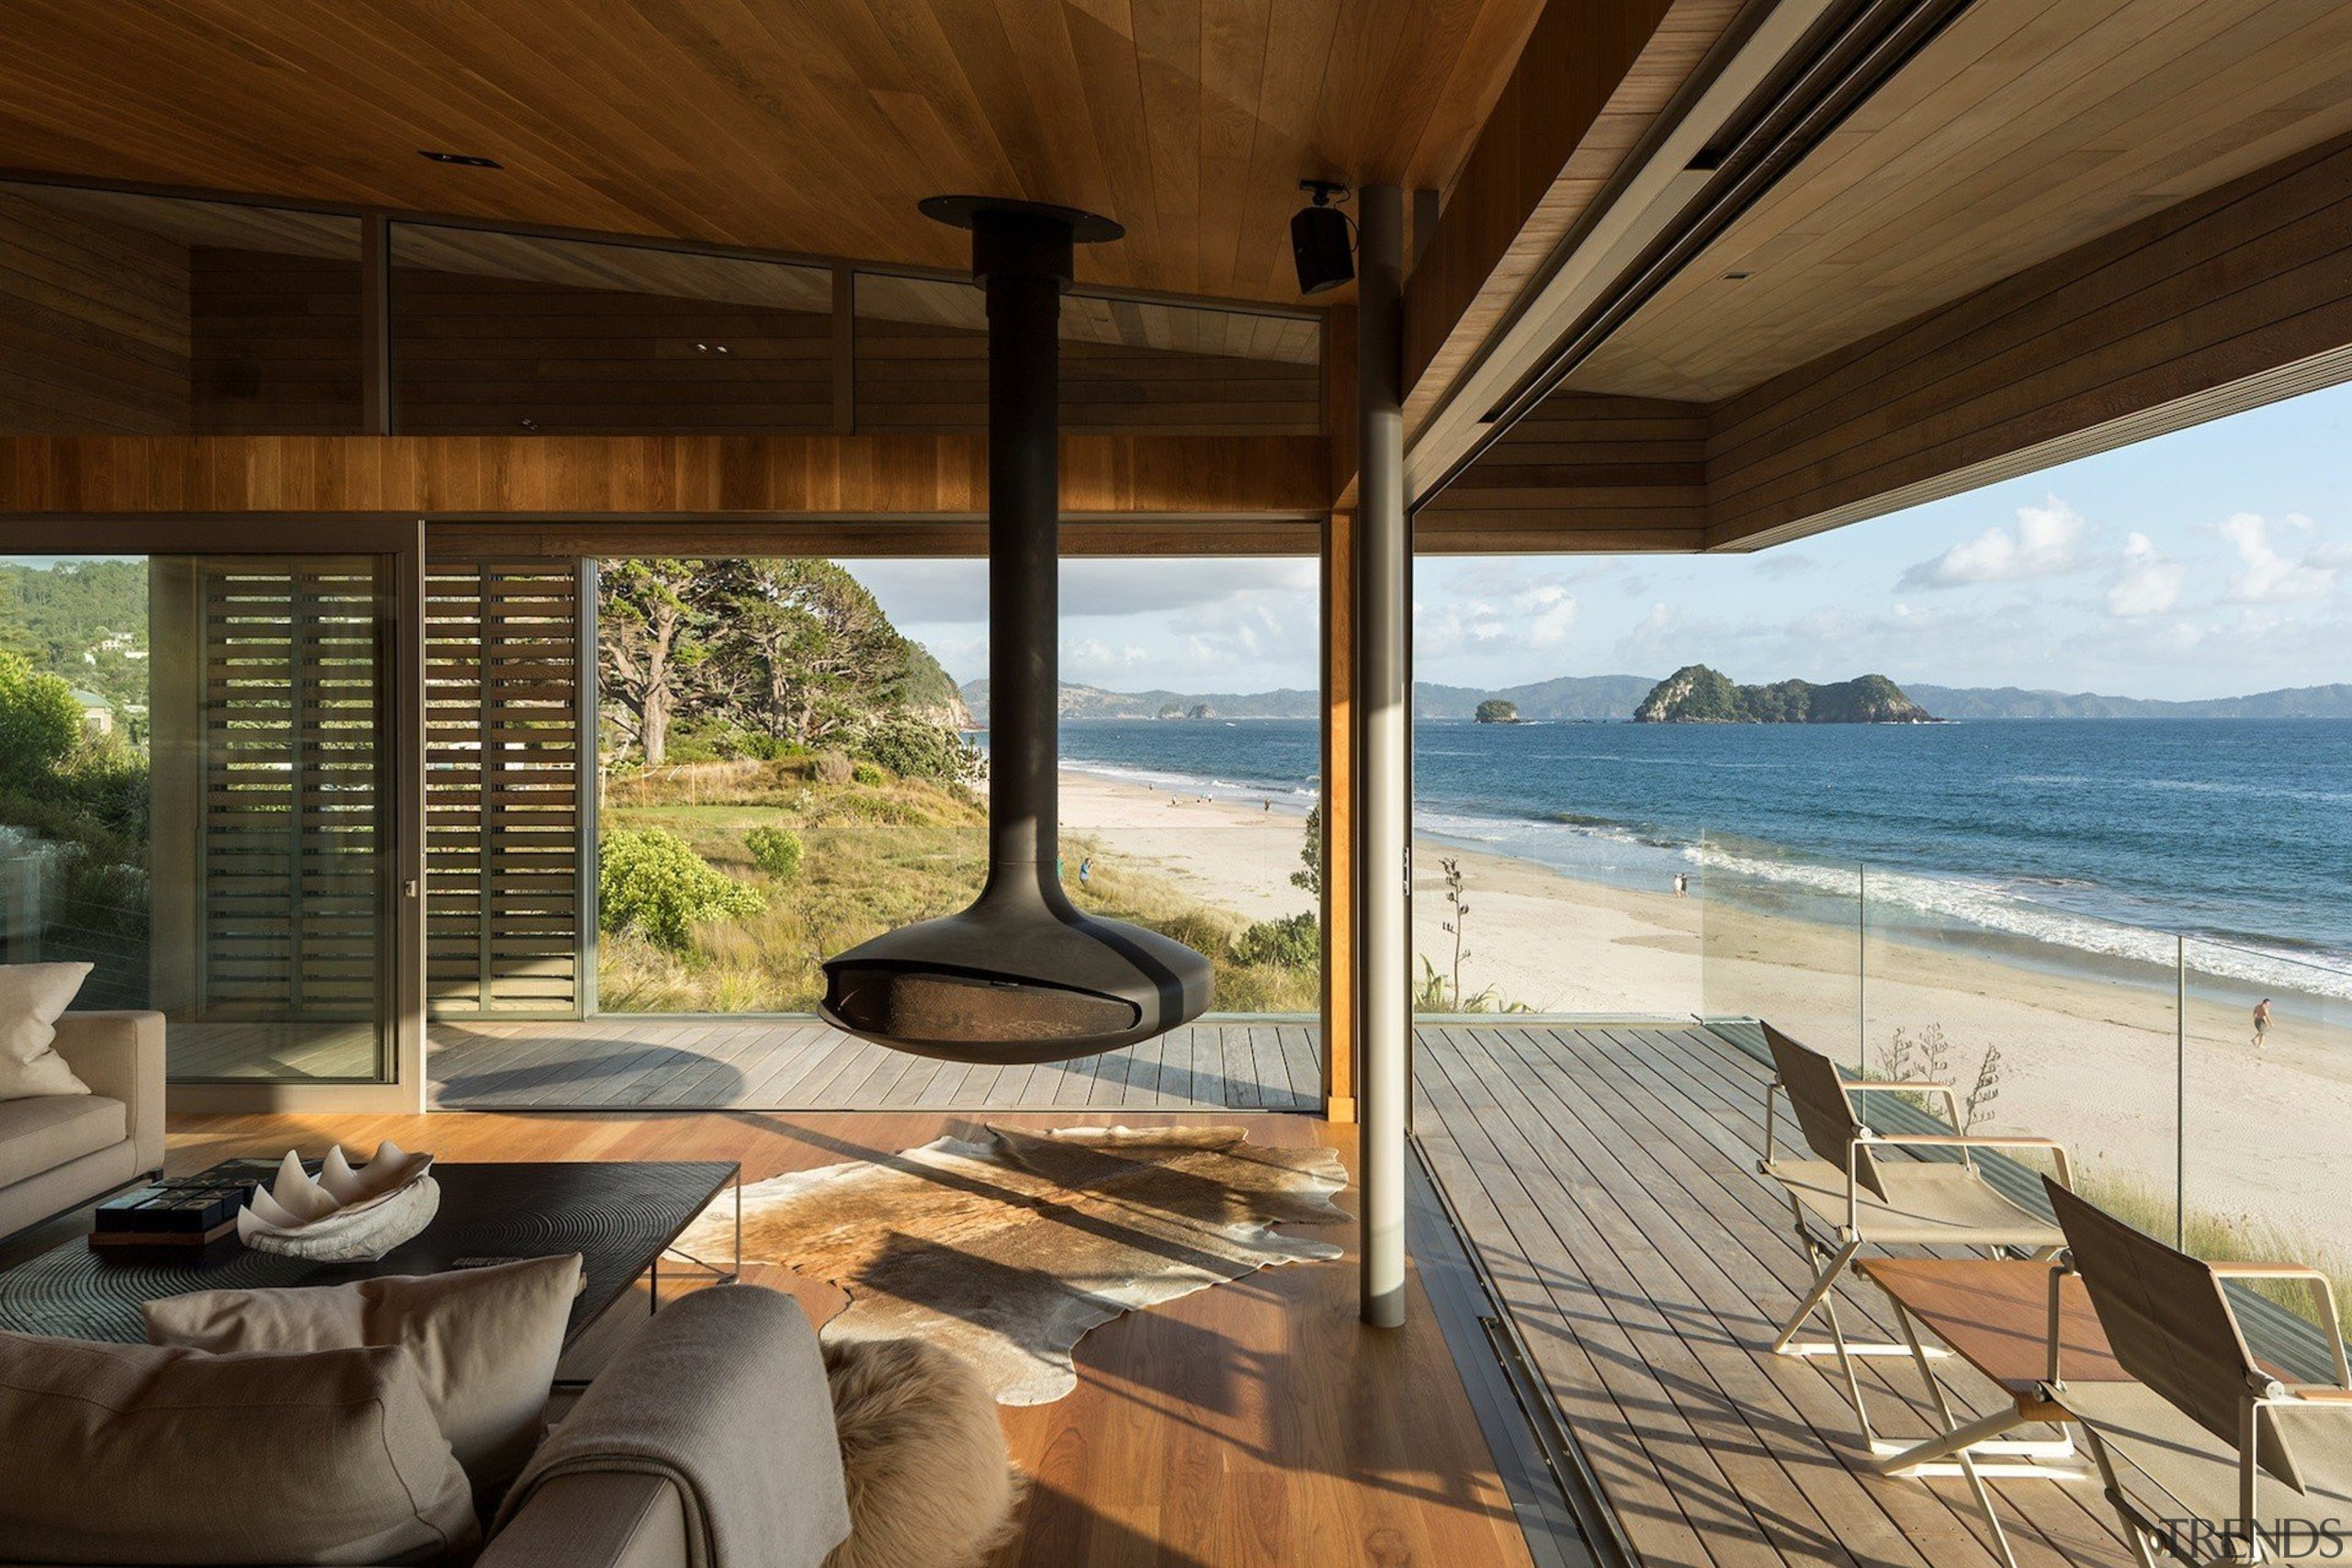 Studio2 Architects architecture, estate, home, house, interior design, living room, property, real estate, wood, brown